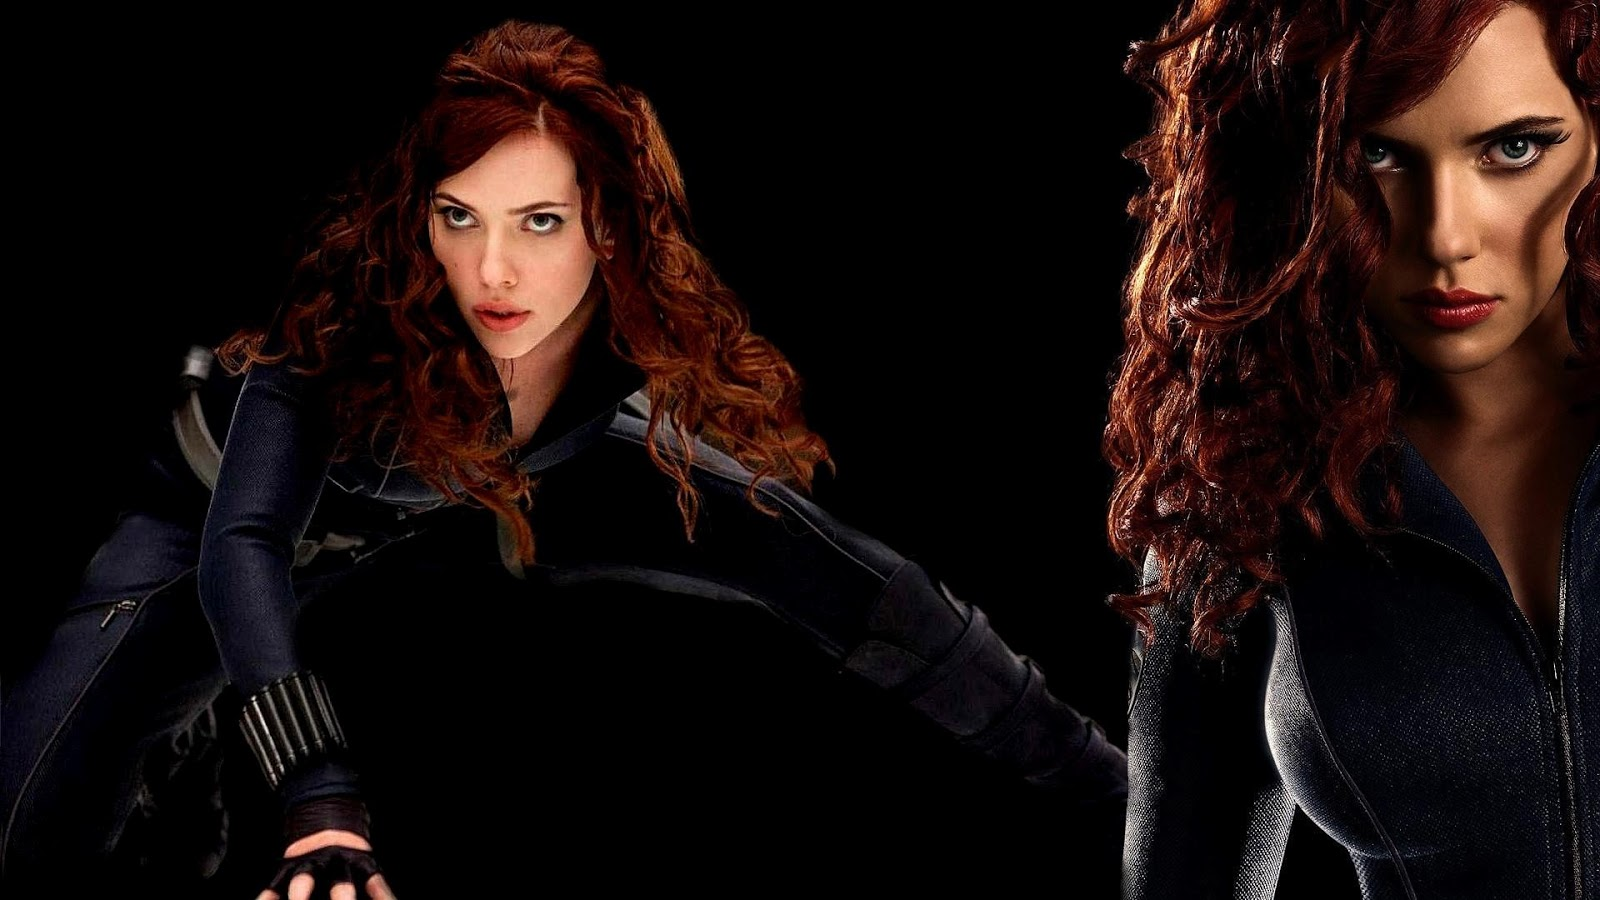 Scarlett johansson black widow wallpaper - photo#22